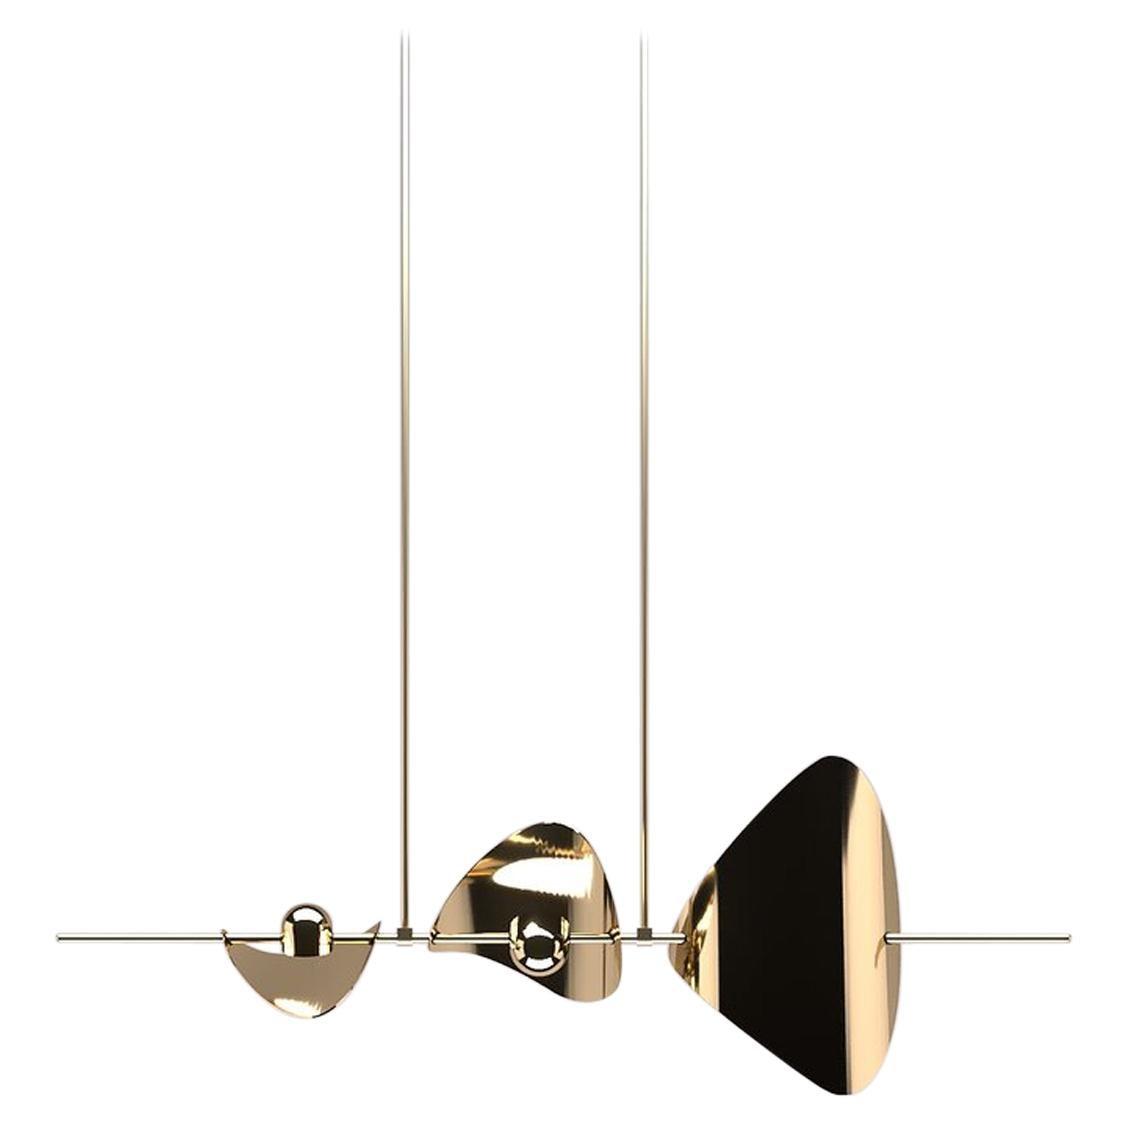 Bonnie Config 3 Contemporary LED Chandelier, Solid Brass or Chromed, Small, Art